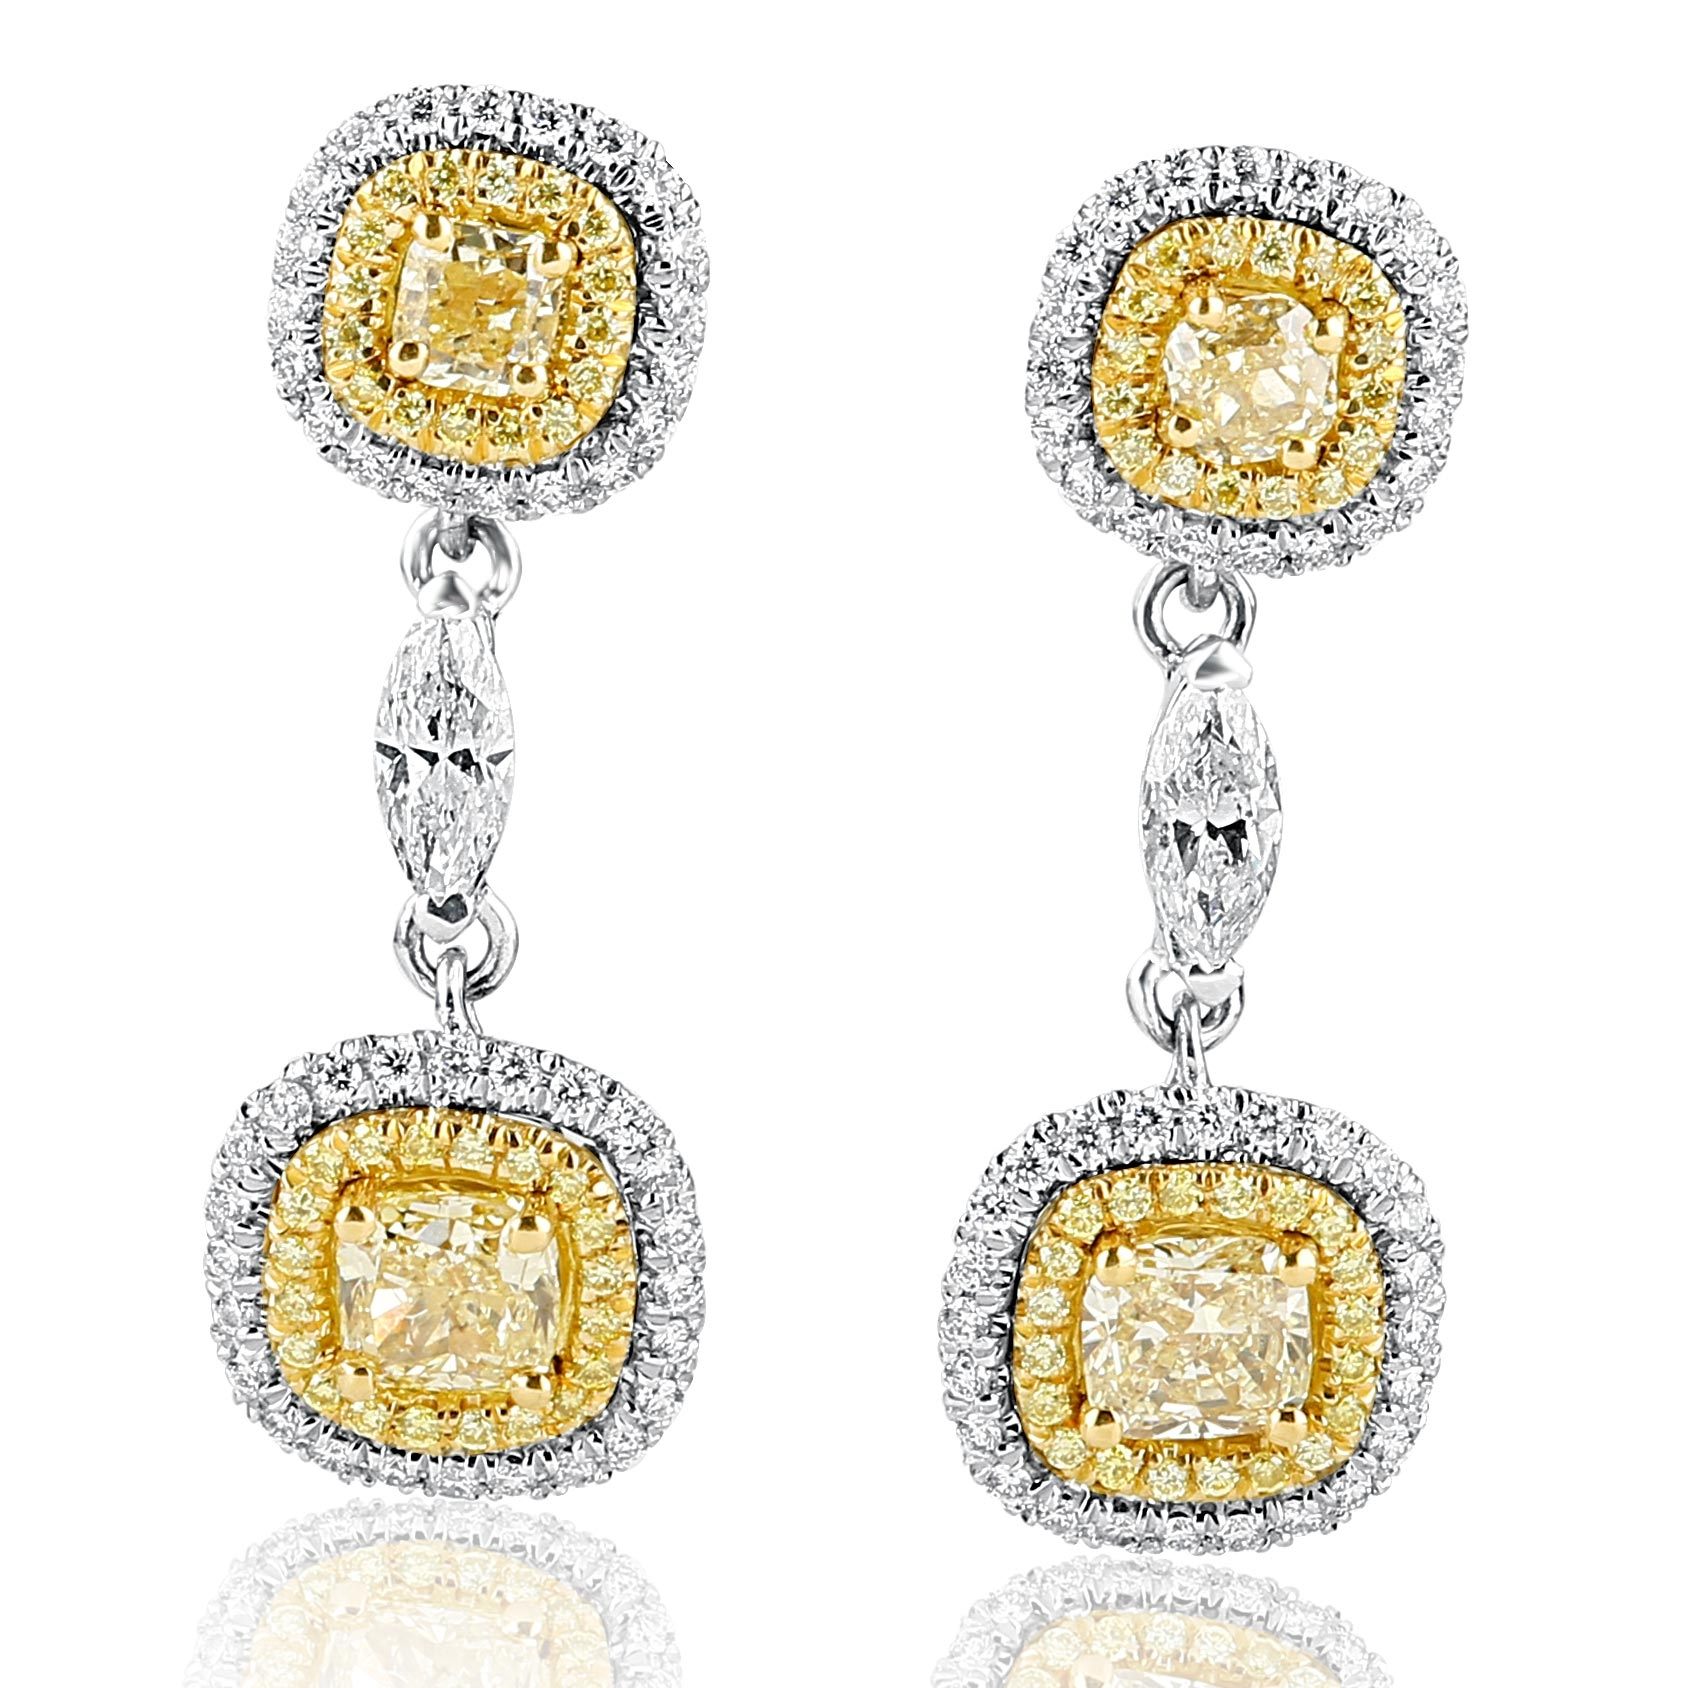 diamond lyst stud earrings sterling product crystal canary judith silver jewelry gallery ripka